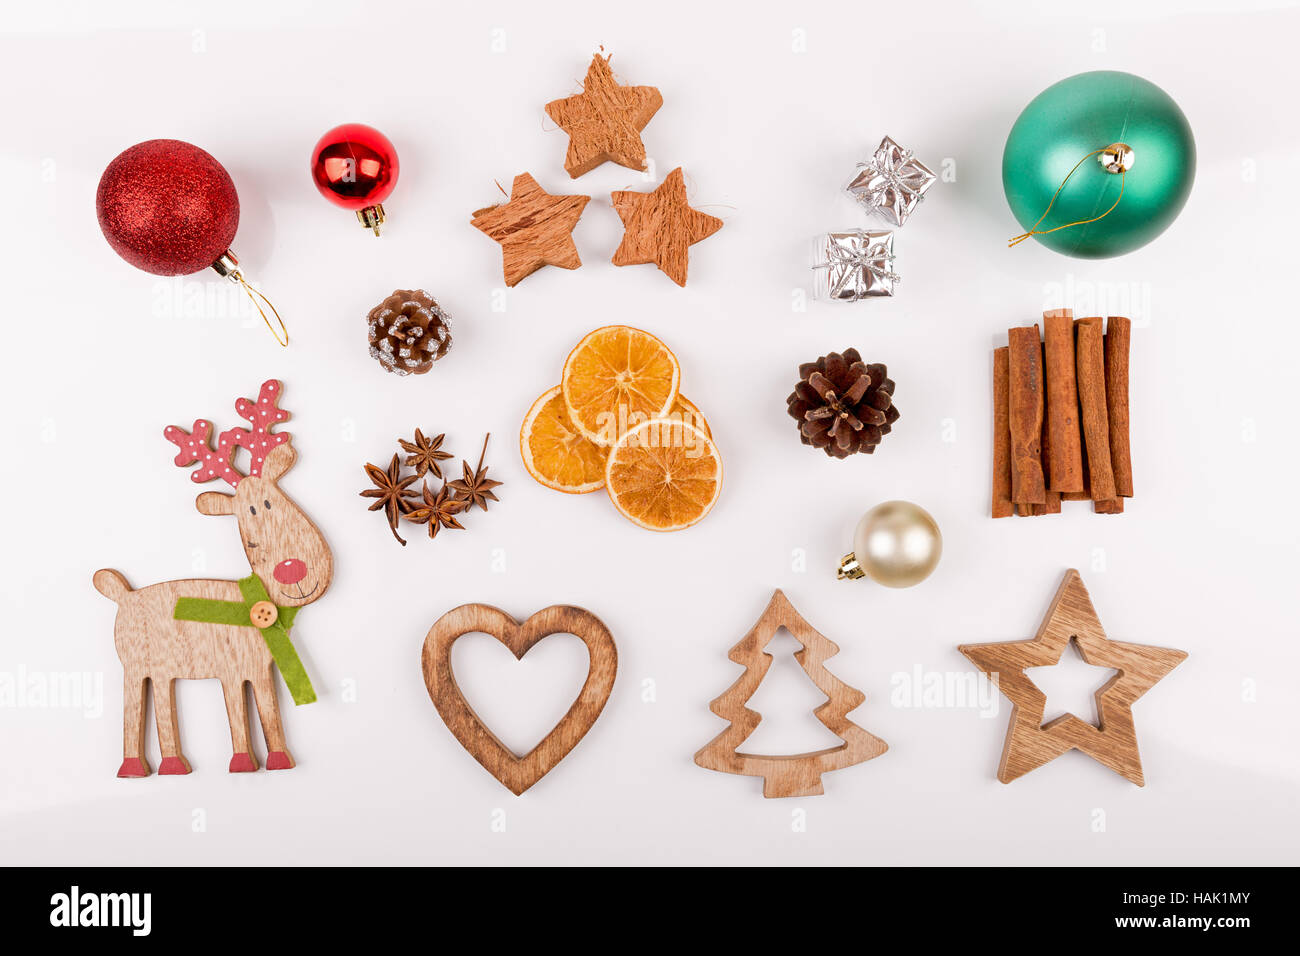 christmas decorations isolated on white background. top view - Stock Image